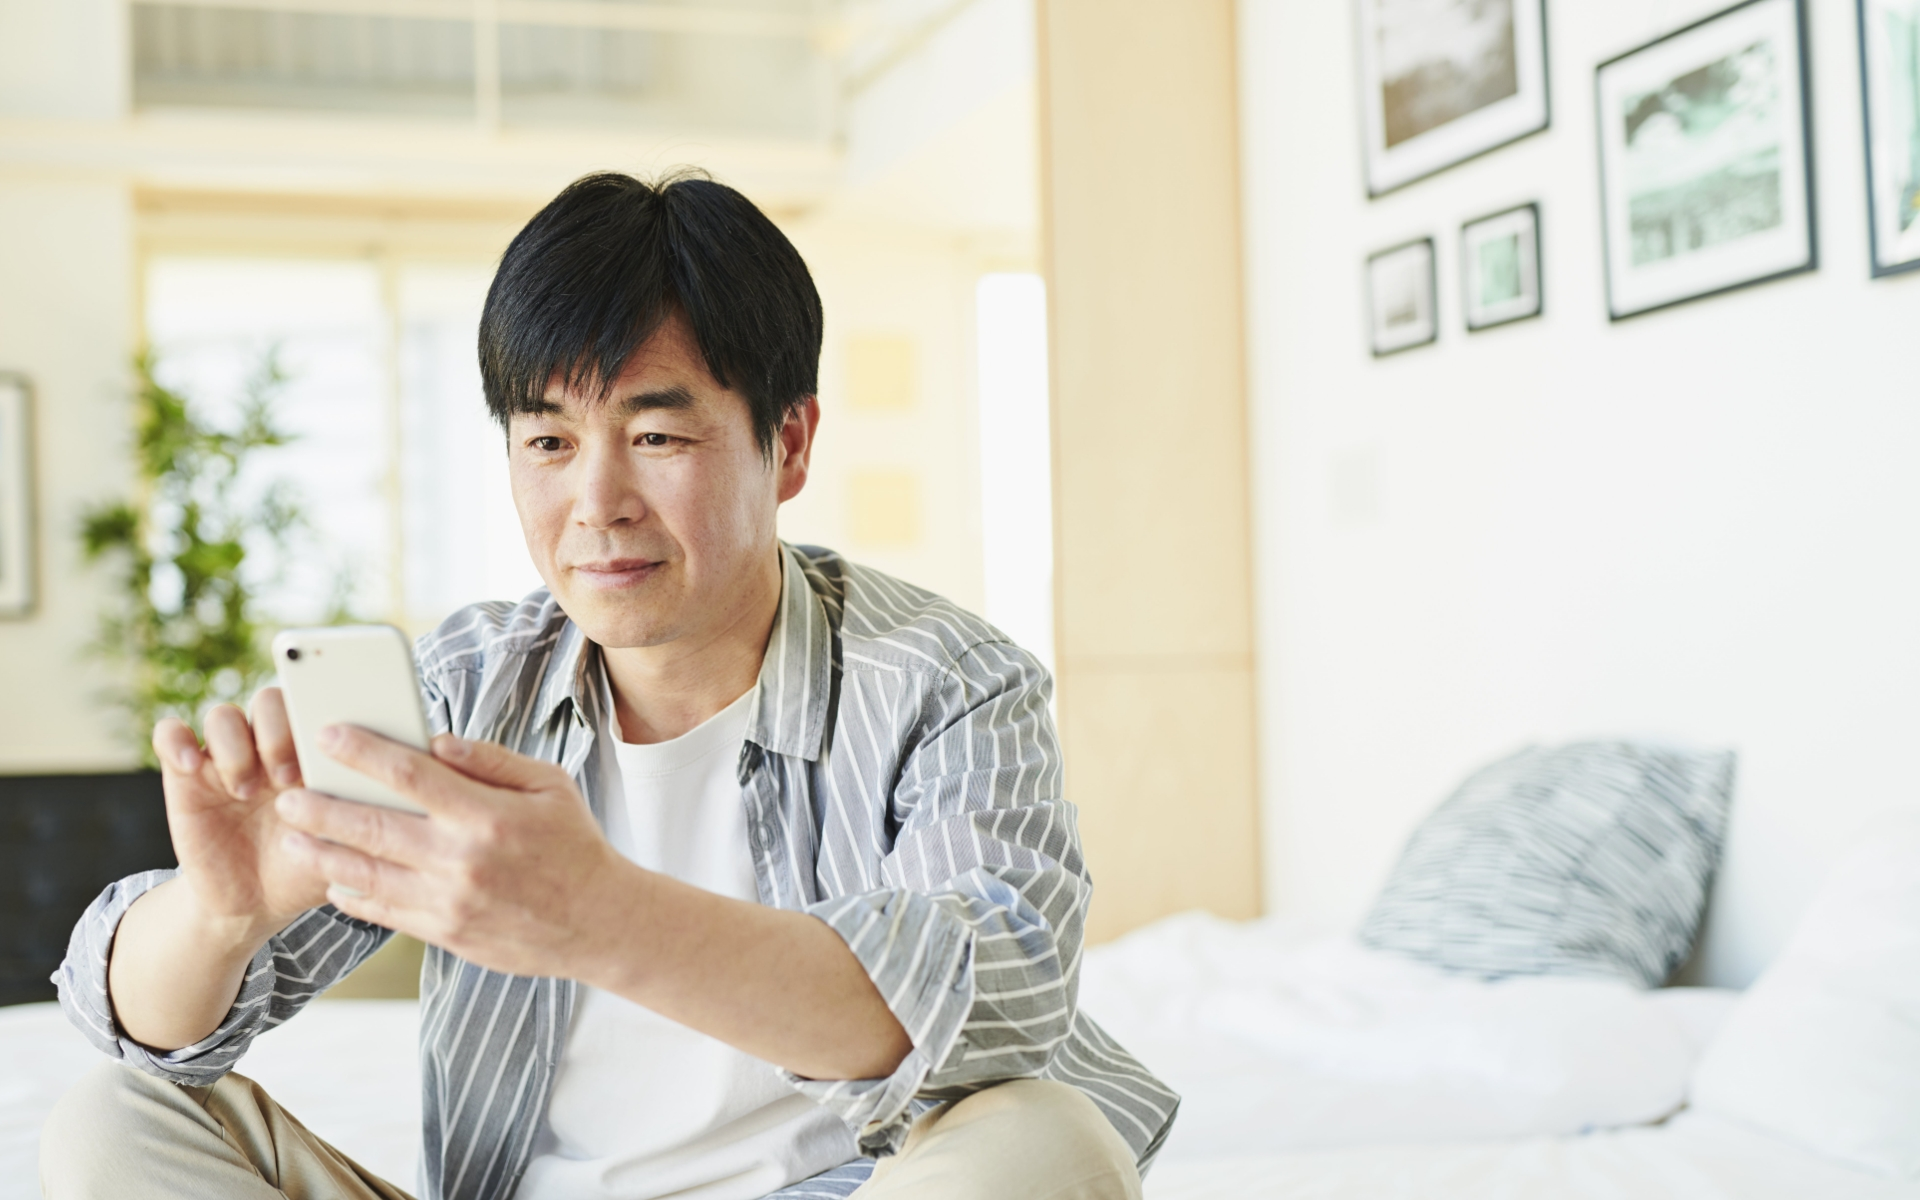 Guest enjoying his hotel room with mobile device